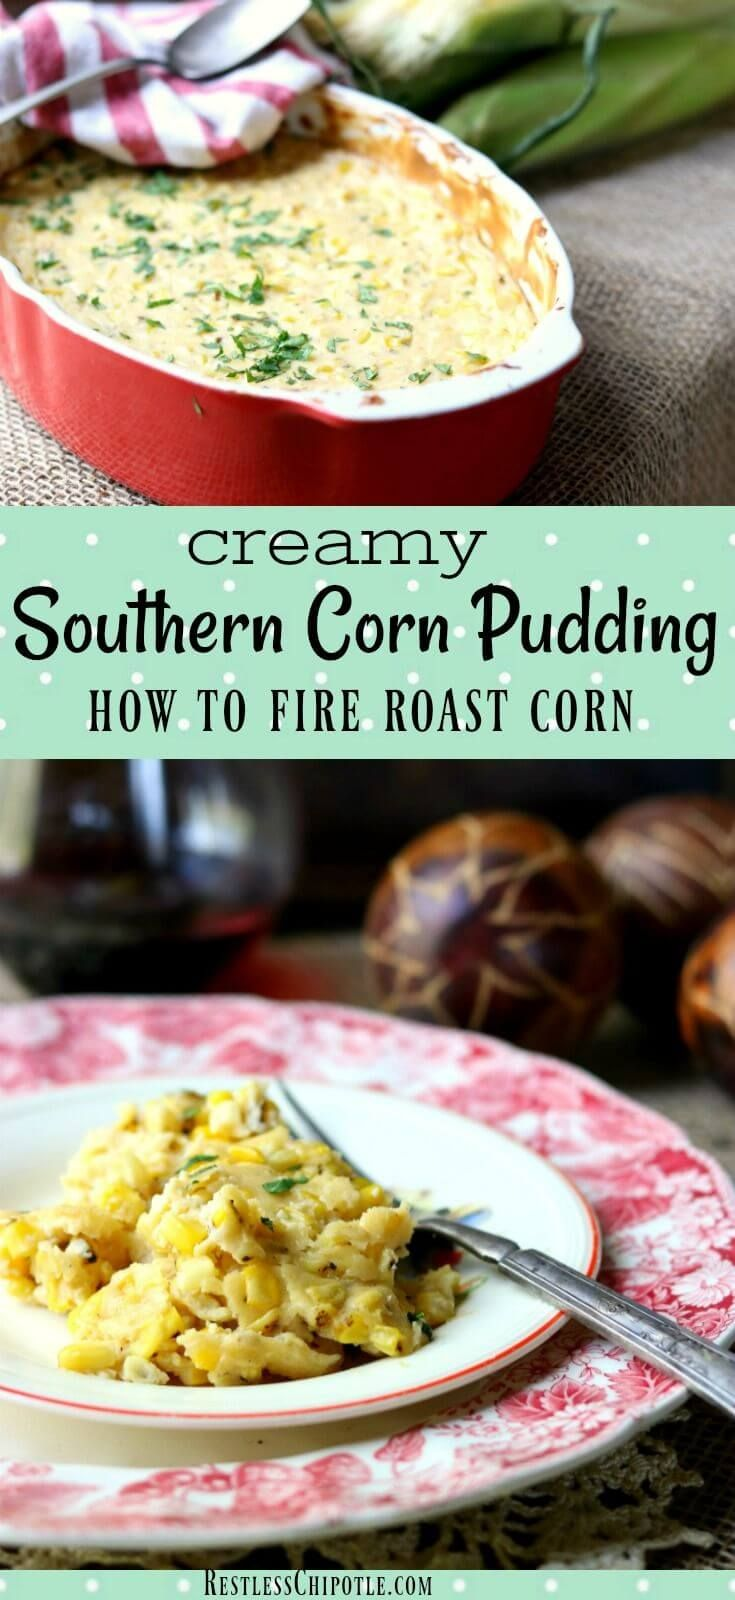 This Southern Corn Pudding recipe is such an easy, make ahead side dish! Fire roasted corn and smoky chipotle partner in this classic casserole. How to fire roast corn step by step. #sidedishes #recipes #corn From RestlessCHipotle.com via @Marye at Restless Chipotle